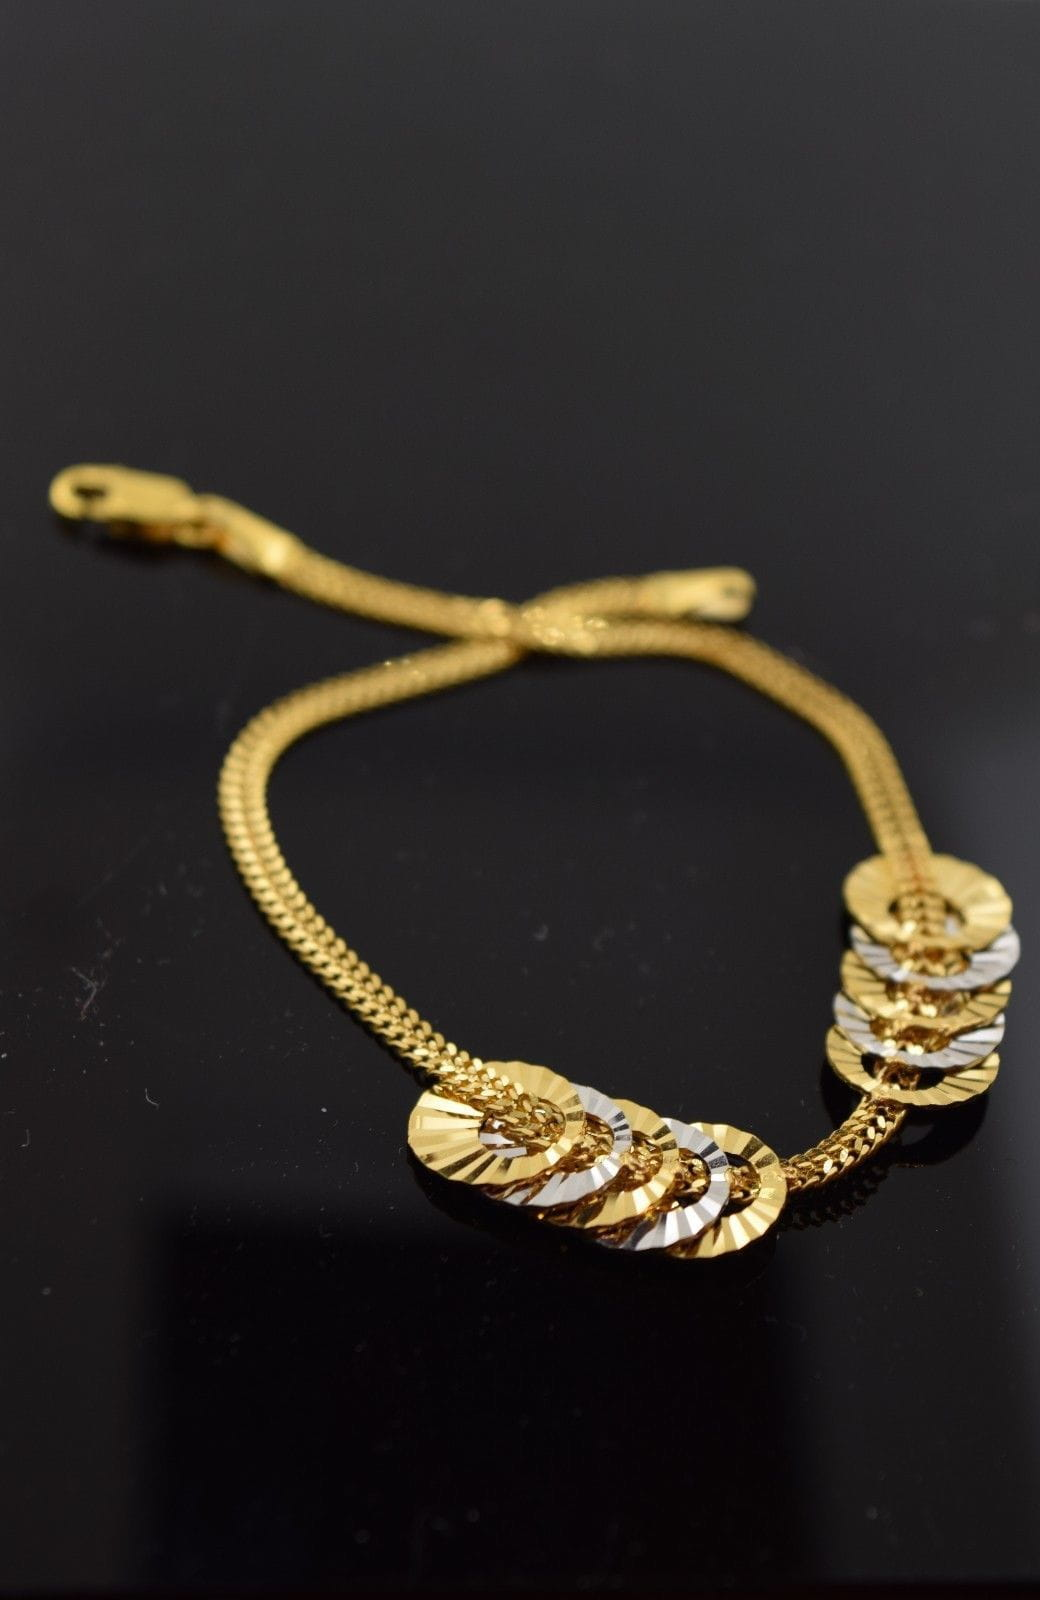 22k 22ct Solid Gold ELEGANT Bracelet with box length 7.7 Inch CB58 - Royal Dubai Jewellers